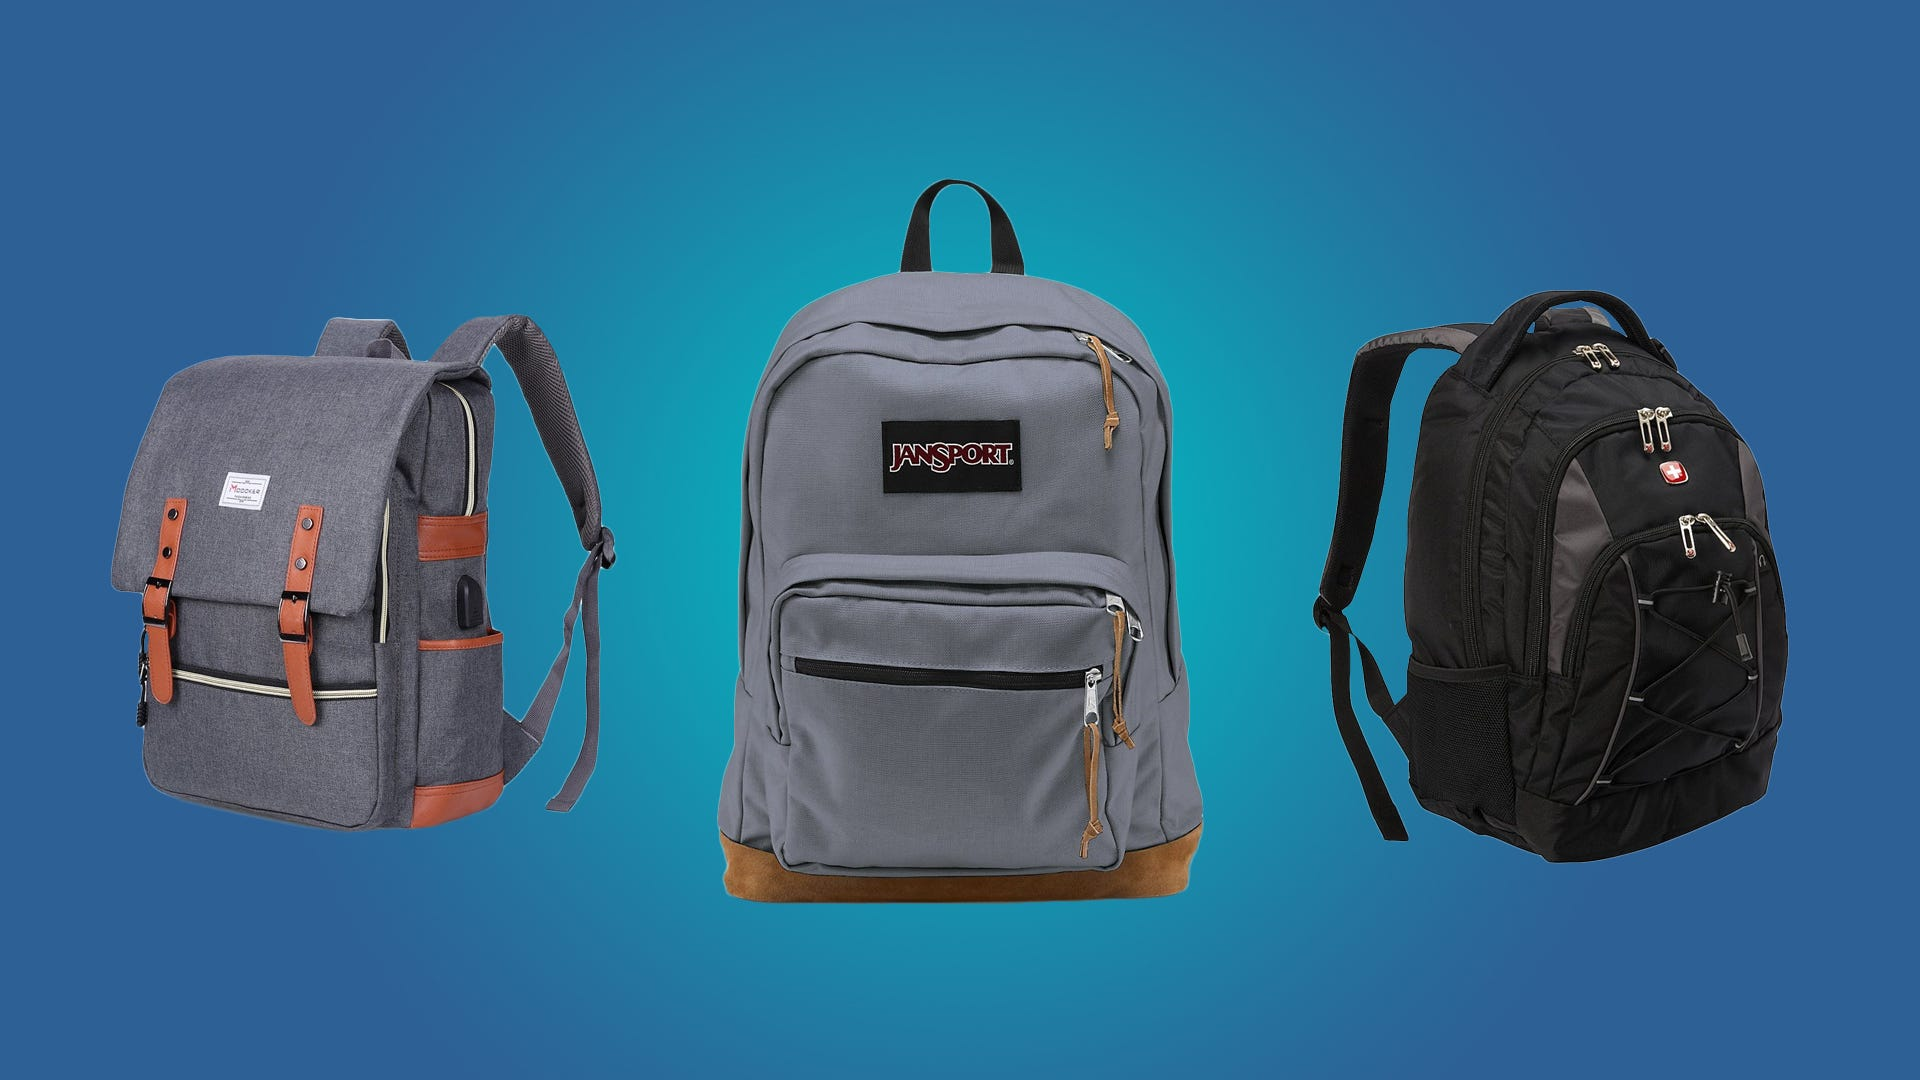 aaade8793c Top 10 Best Backpacks for College in 2018 - ThemeCountry